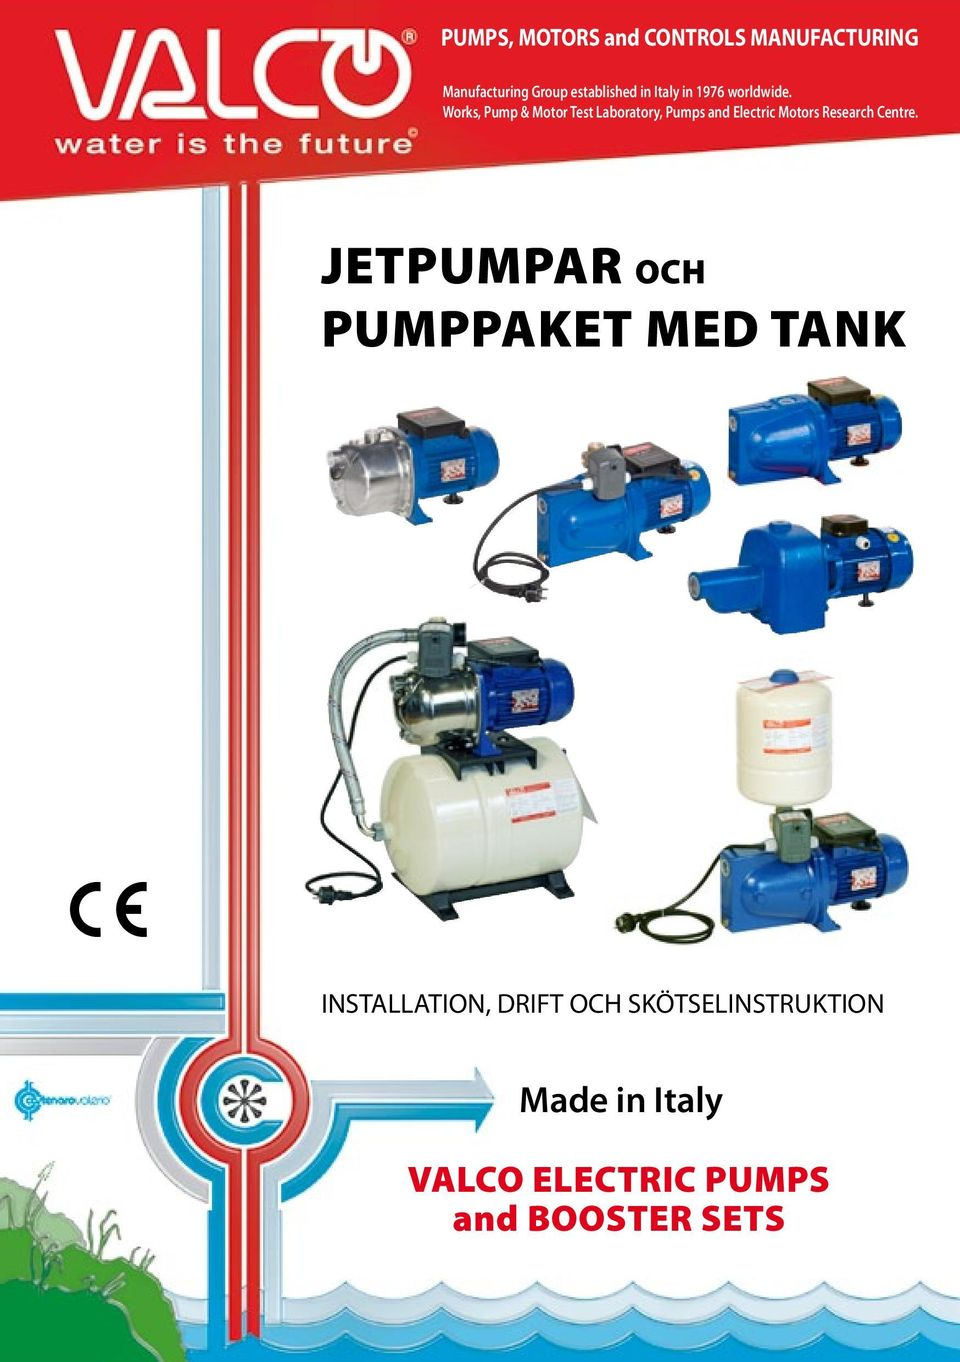 Works, Pump & Motor Test Laboratory, Pumps and Electric Motors Research